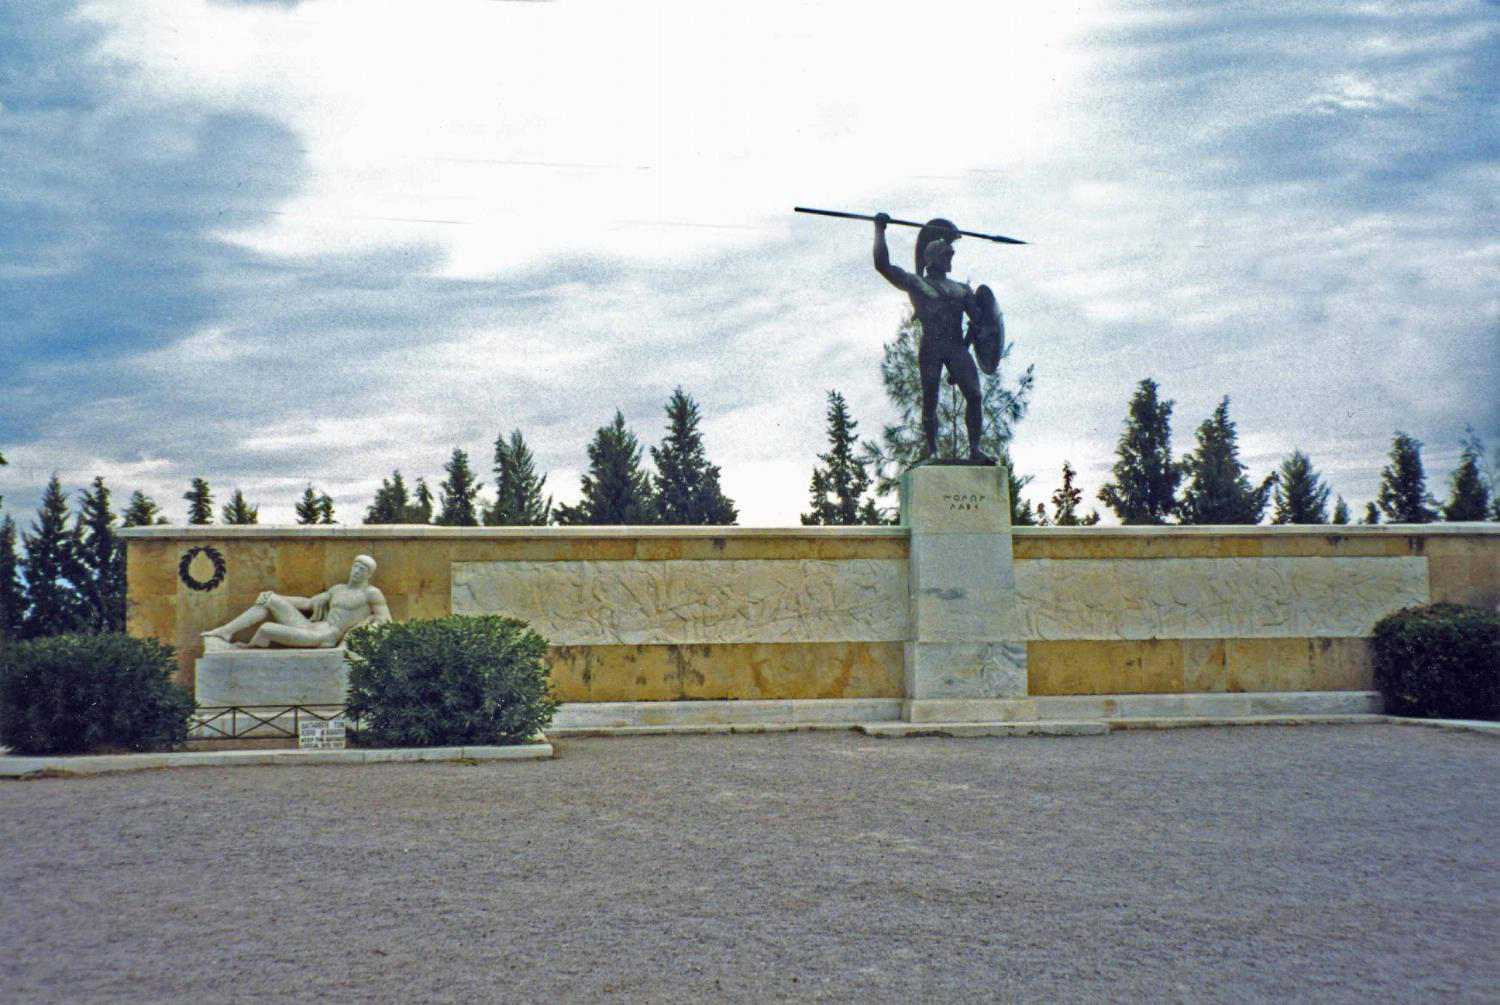 Monument to King Leonidas and the Spartans at Thermopylae